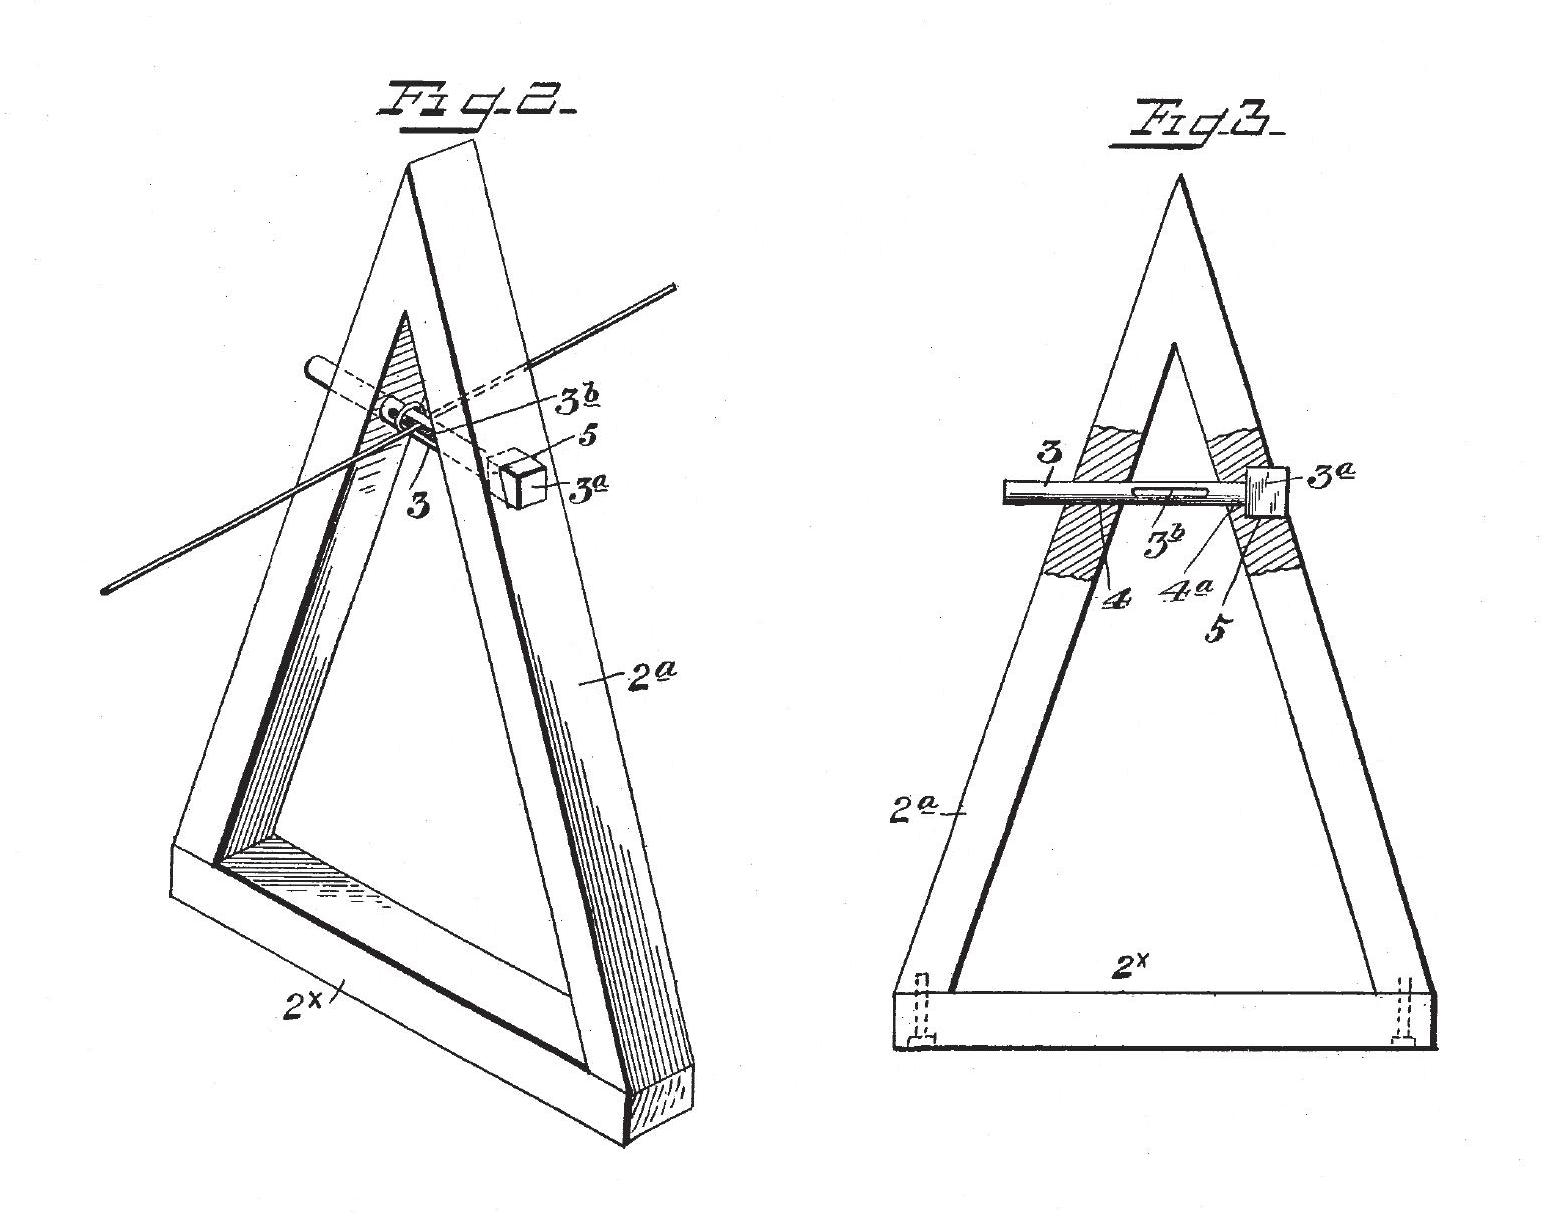 Leonard Weaver Patent Clothesline Support And Tightener